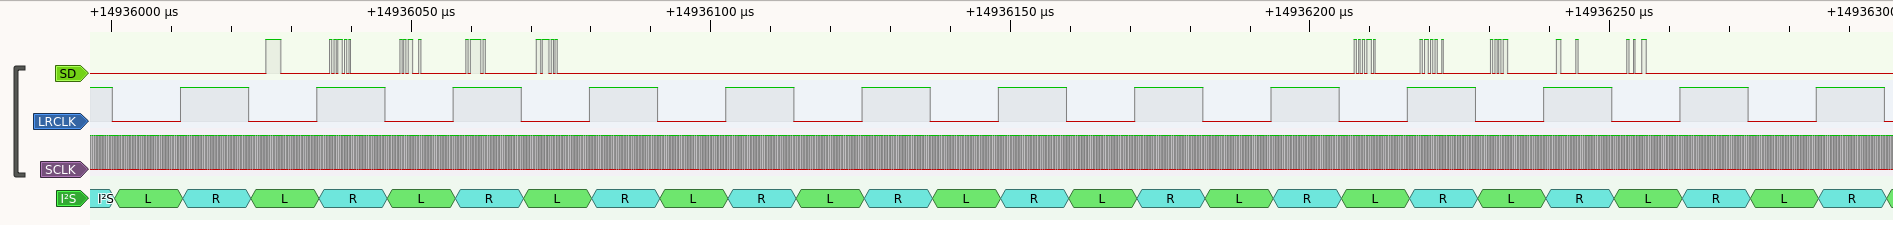 A2DP audio glitches due to zero packets in output (IDFGH